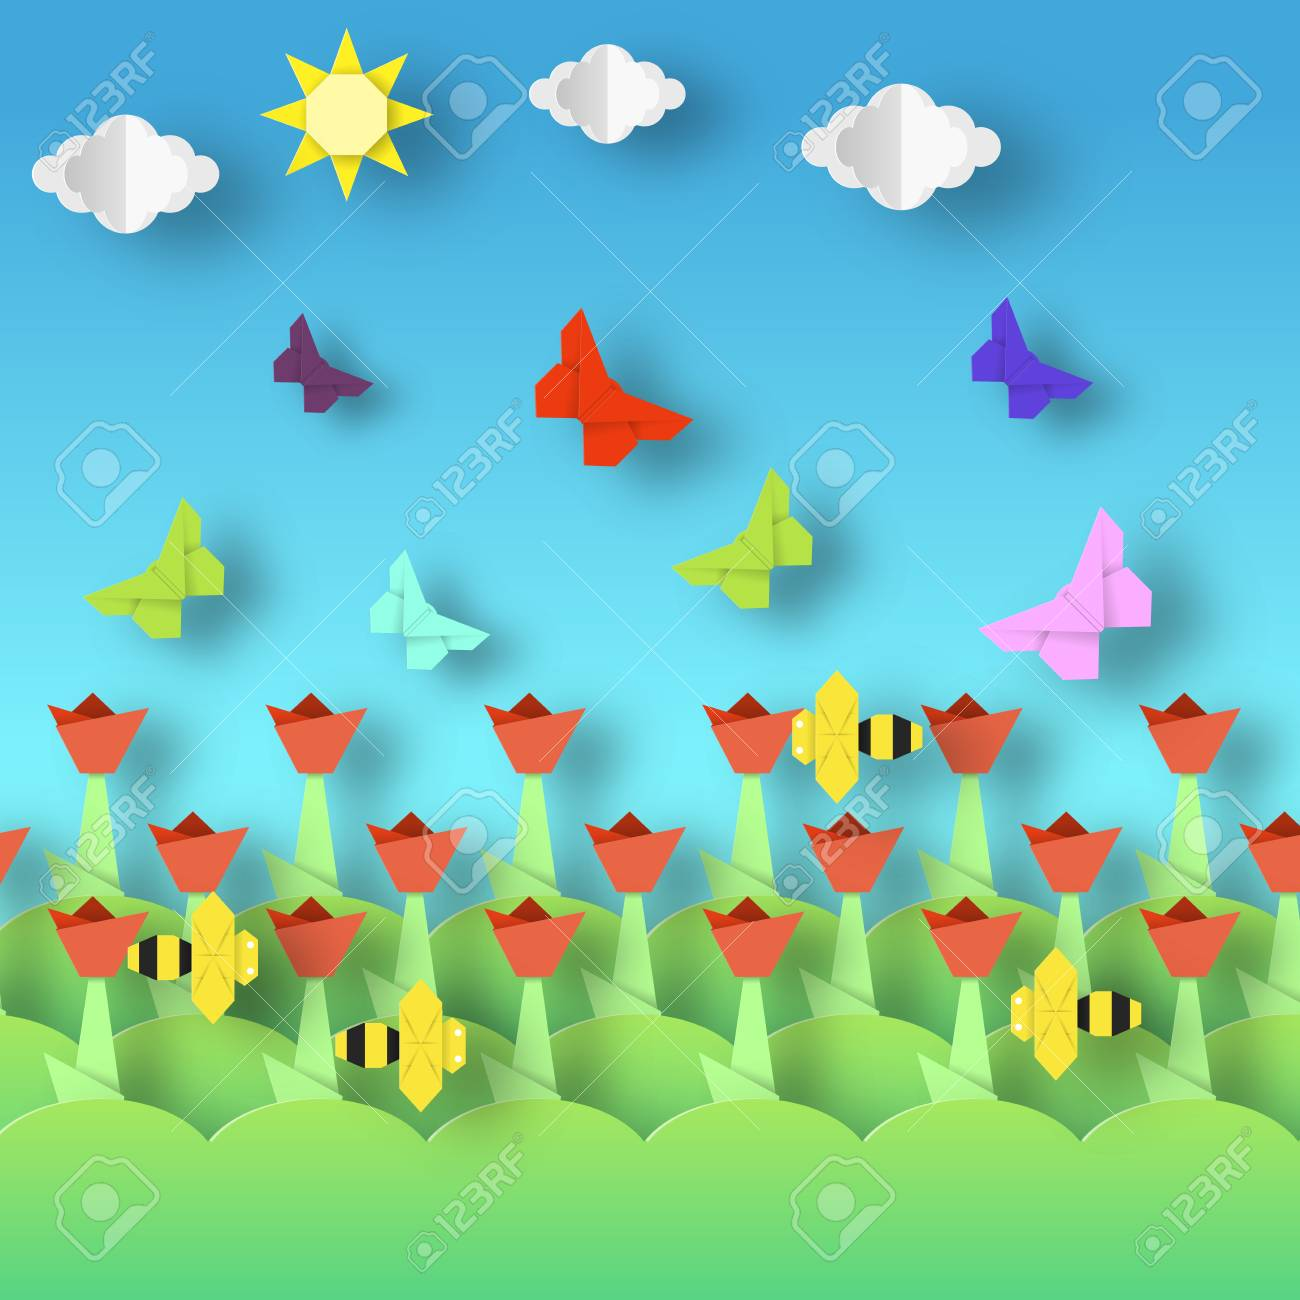 Origami Style Crafted Out Of Paper With Cut Colorful Flowers Butterflies Bee Abstract